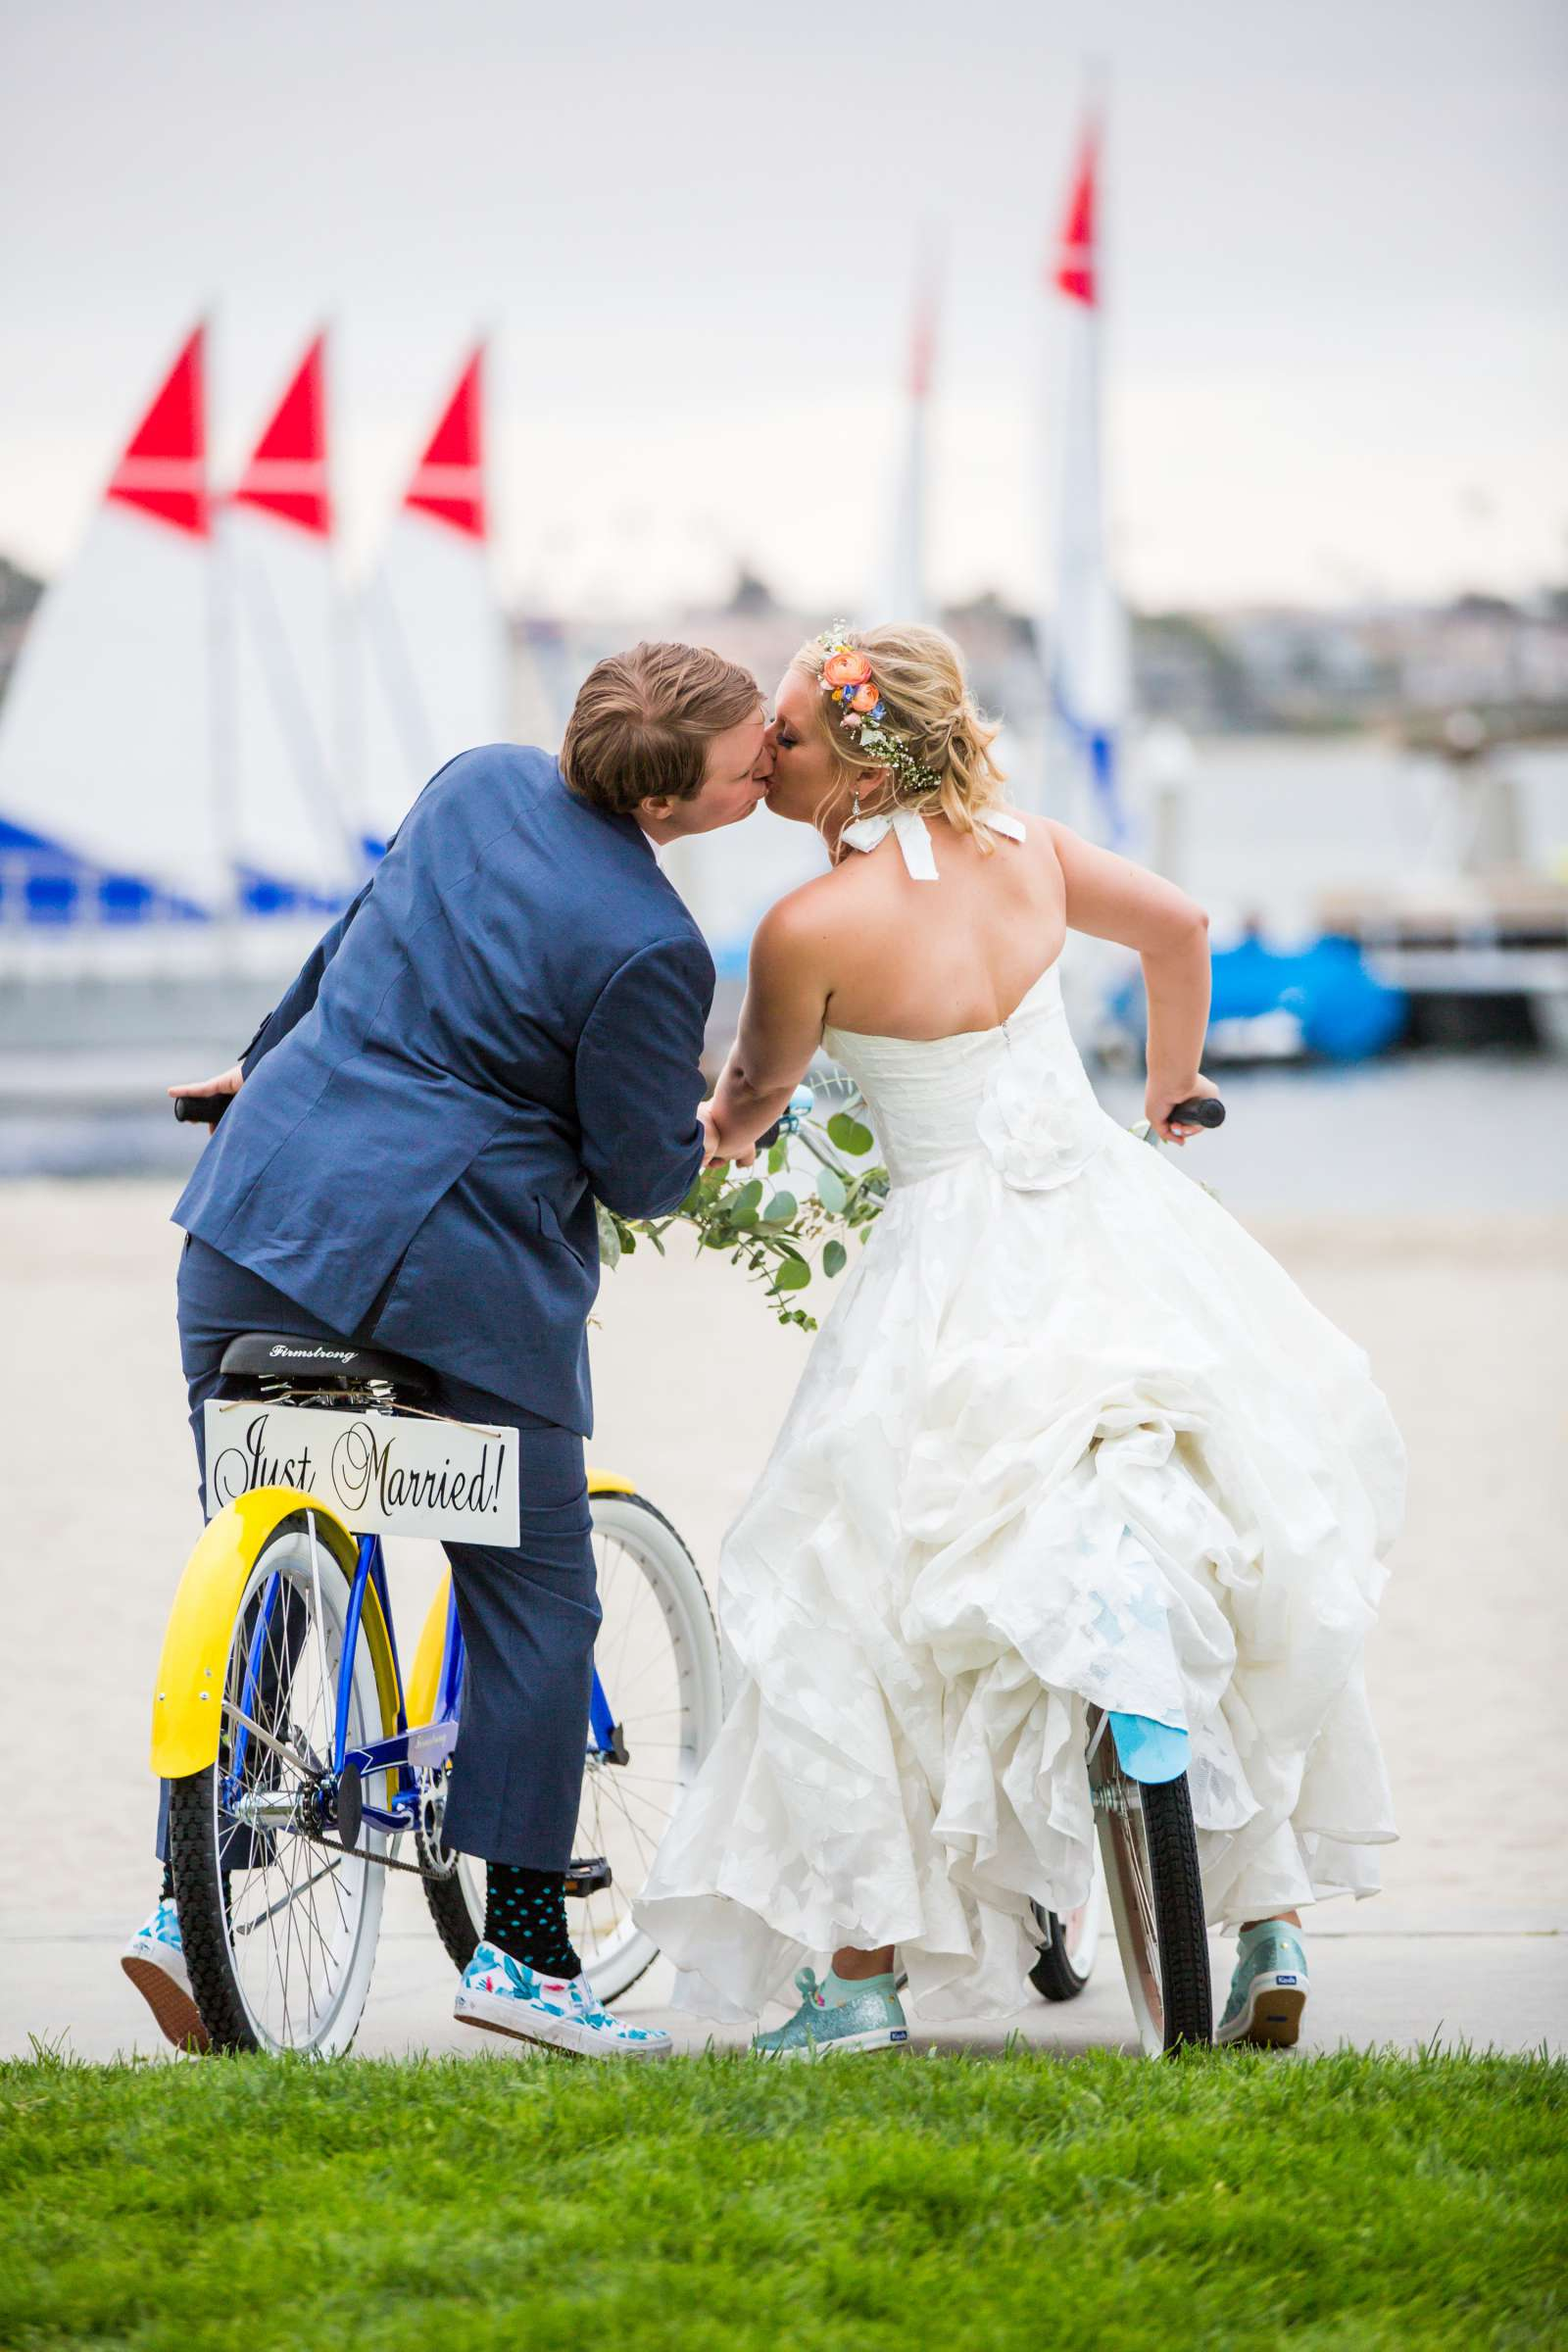 Catamaran Resort Wedding coordinated by Lavish Weddings, Brittany and David Wedding Photo #109 by True Photography